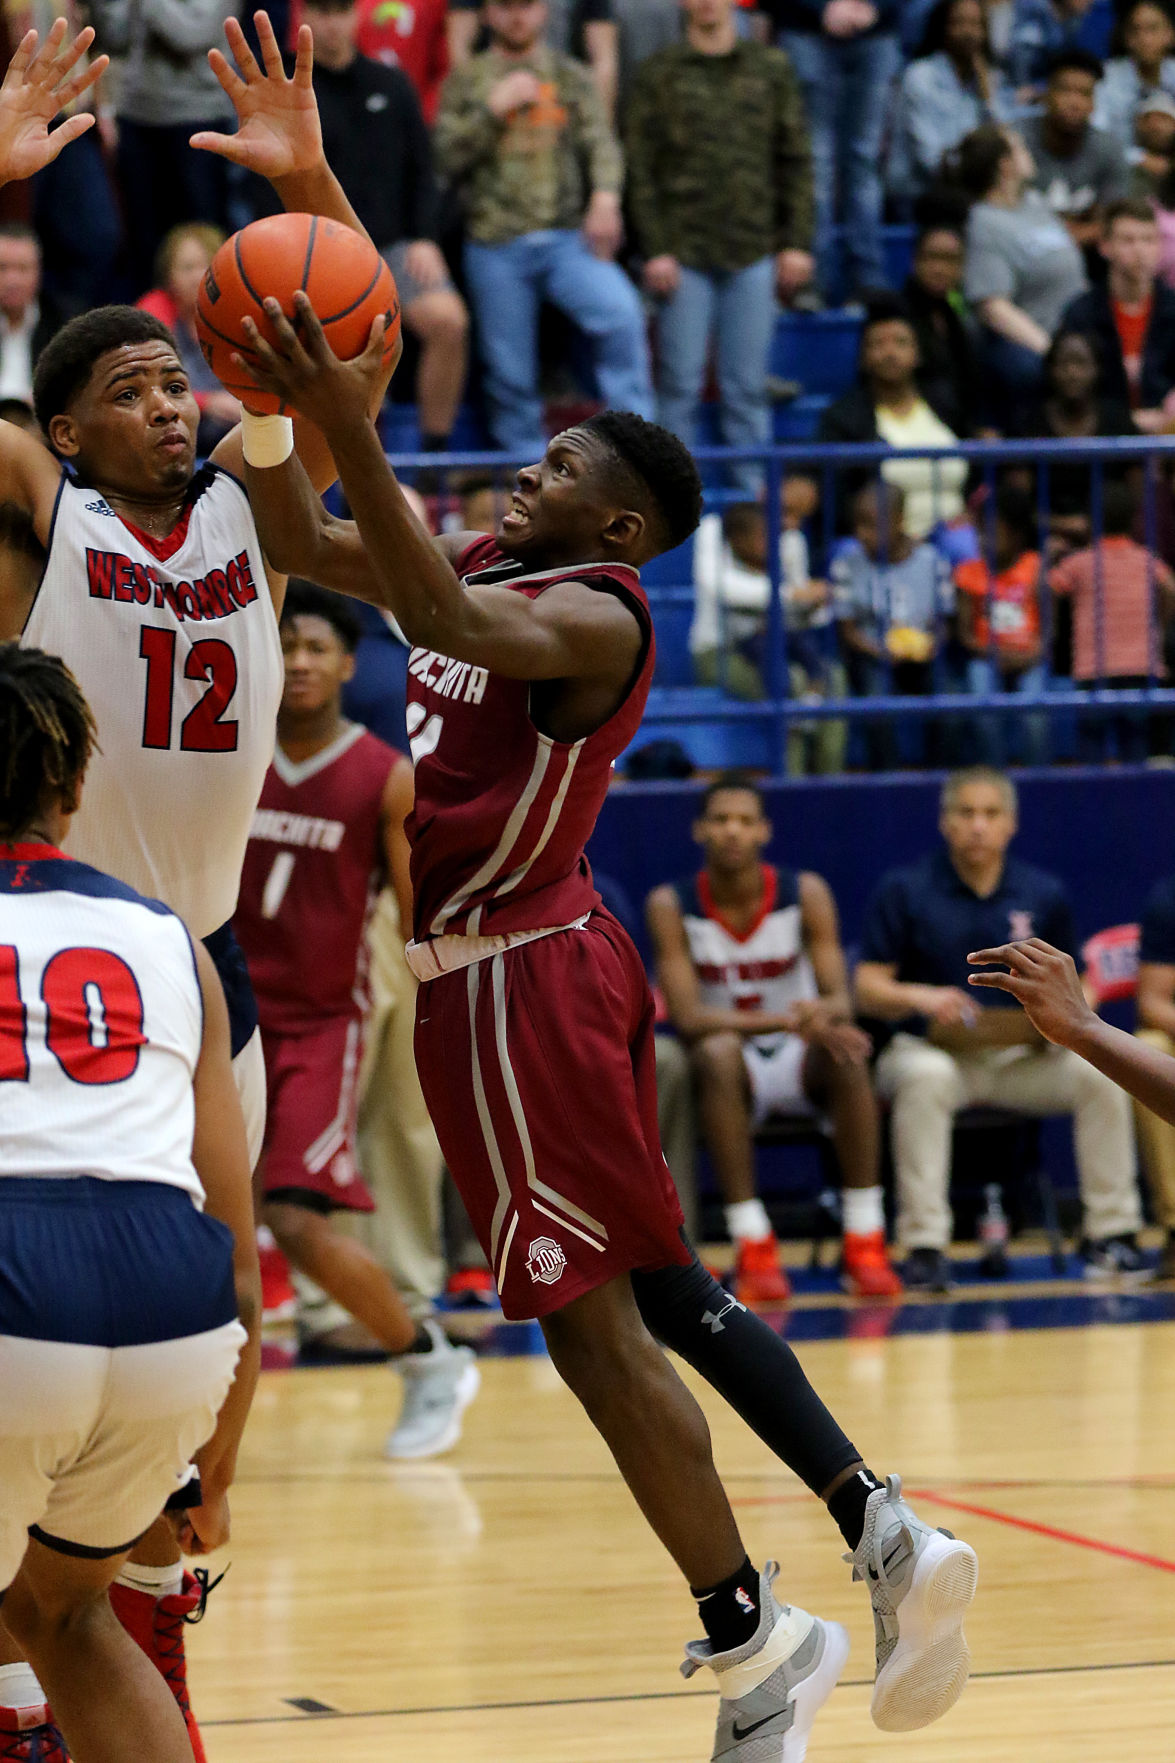 Rd. 2 5A Playoffs - Ouachita 58, West Monroe 46